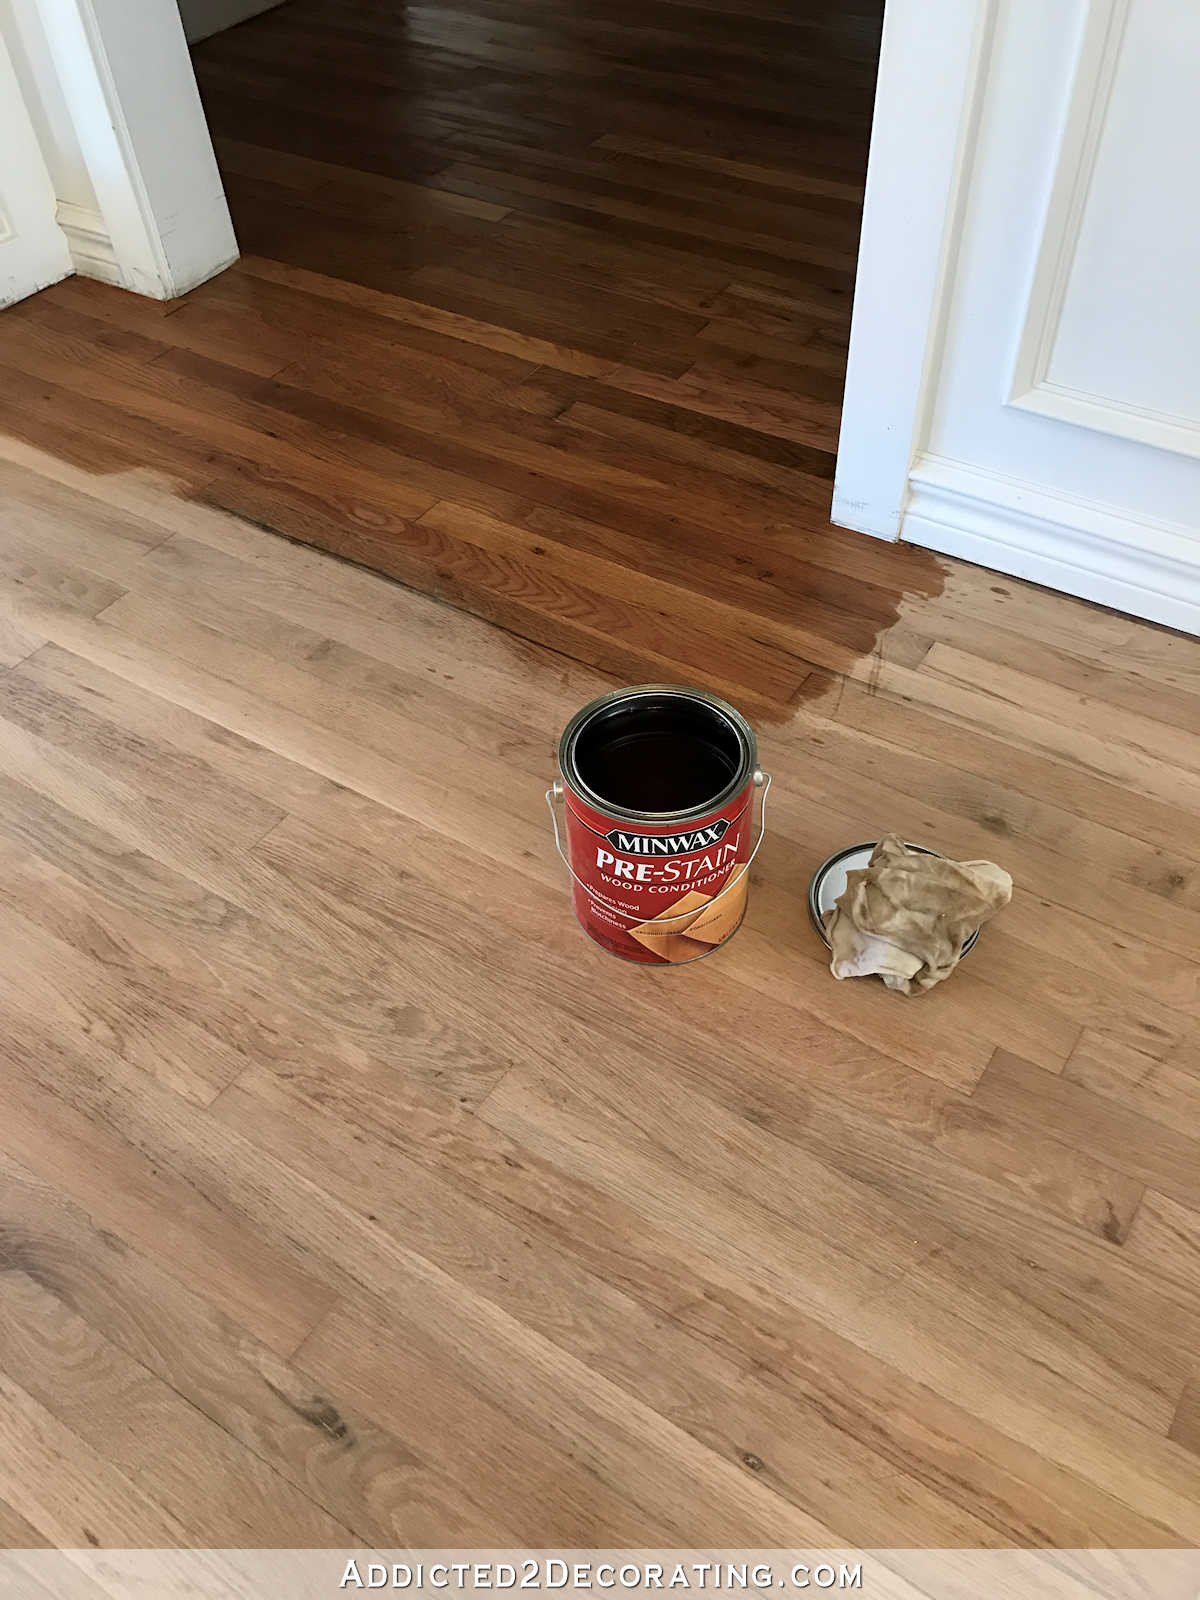 Installing Unfinished Hardwood Floors Yourself Of Adventures In Staining My Red Oak Hardwood Floors Products Process Pertaining to Staining Red Oak Hardwood Floors 1 Conditioning the Wood with Minwax Pre Stain